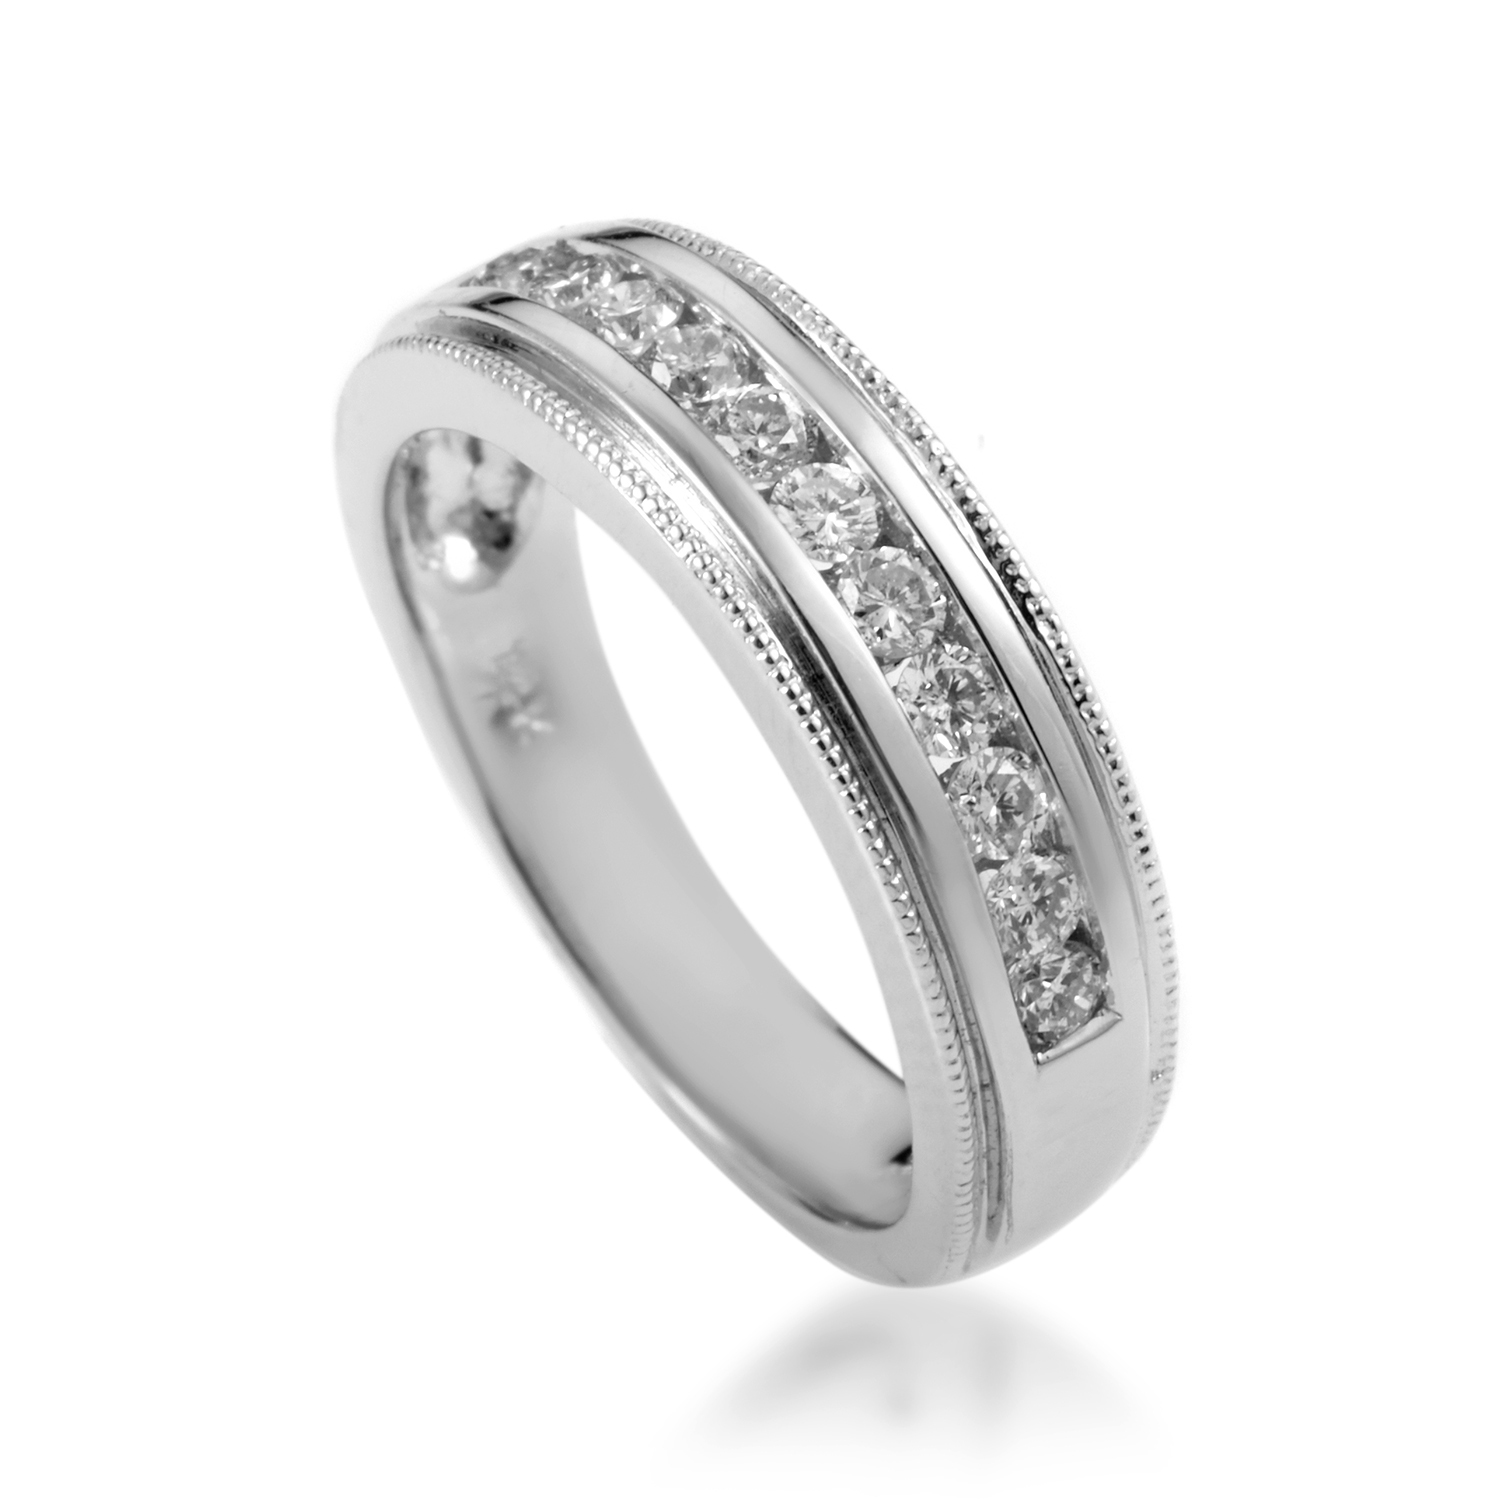 14K White Gold 12 Diamond Wedding Band PSB09-072116